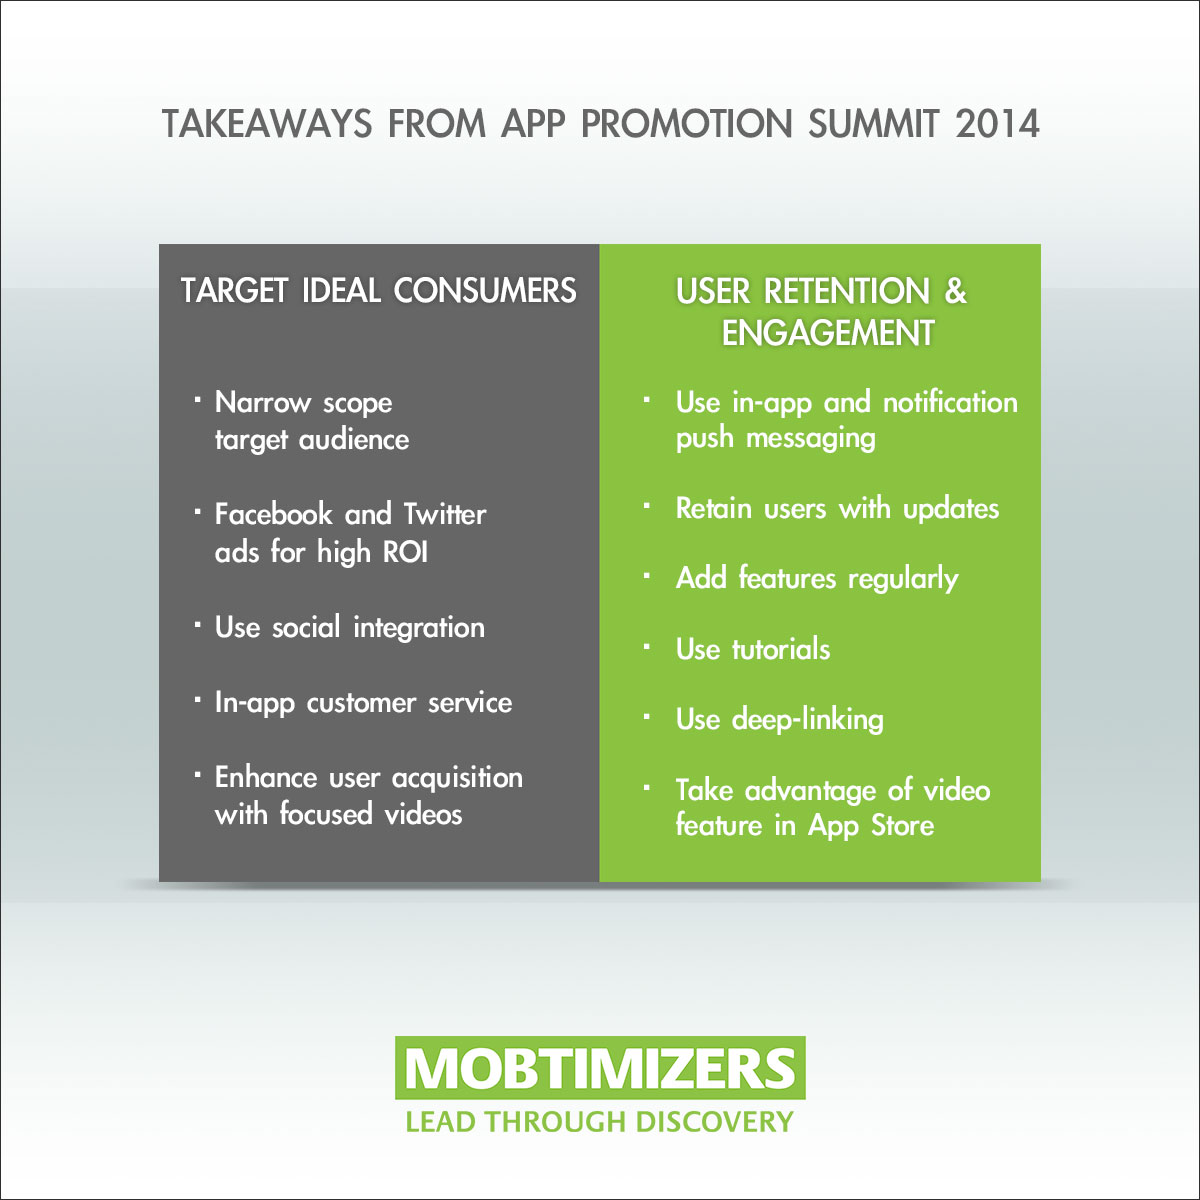 Takeaways from App Promotion Summit 2014.